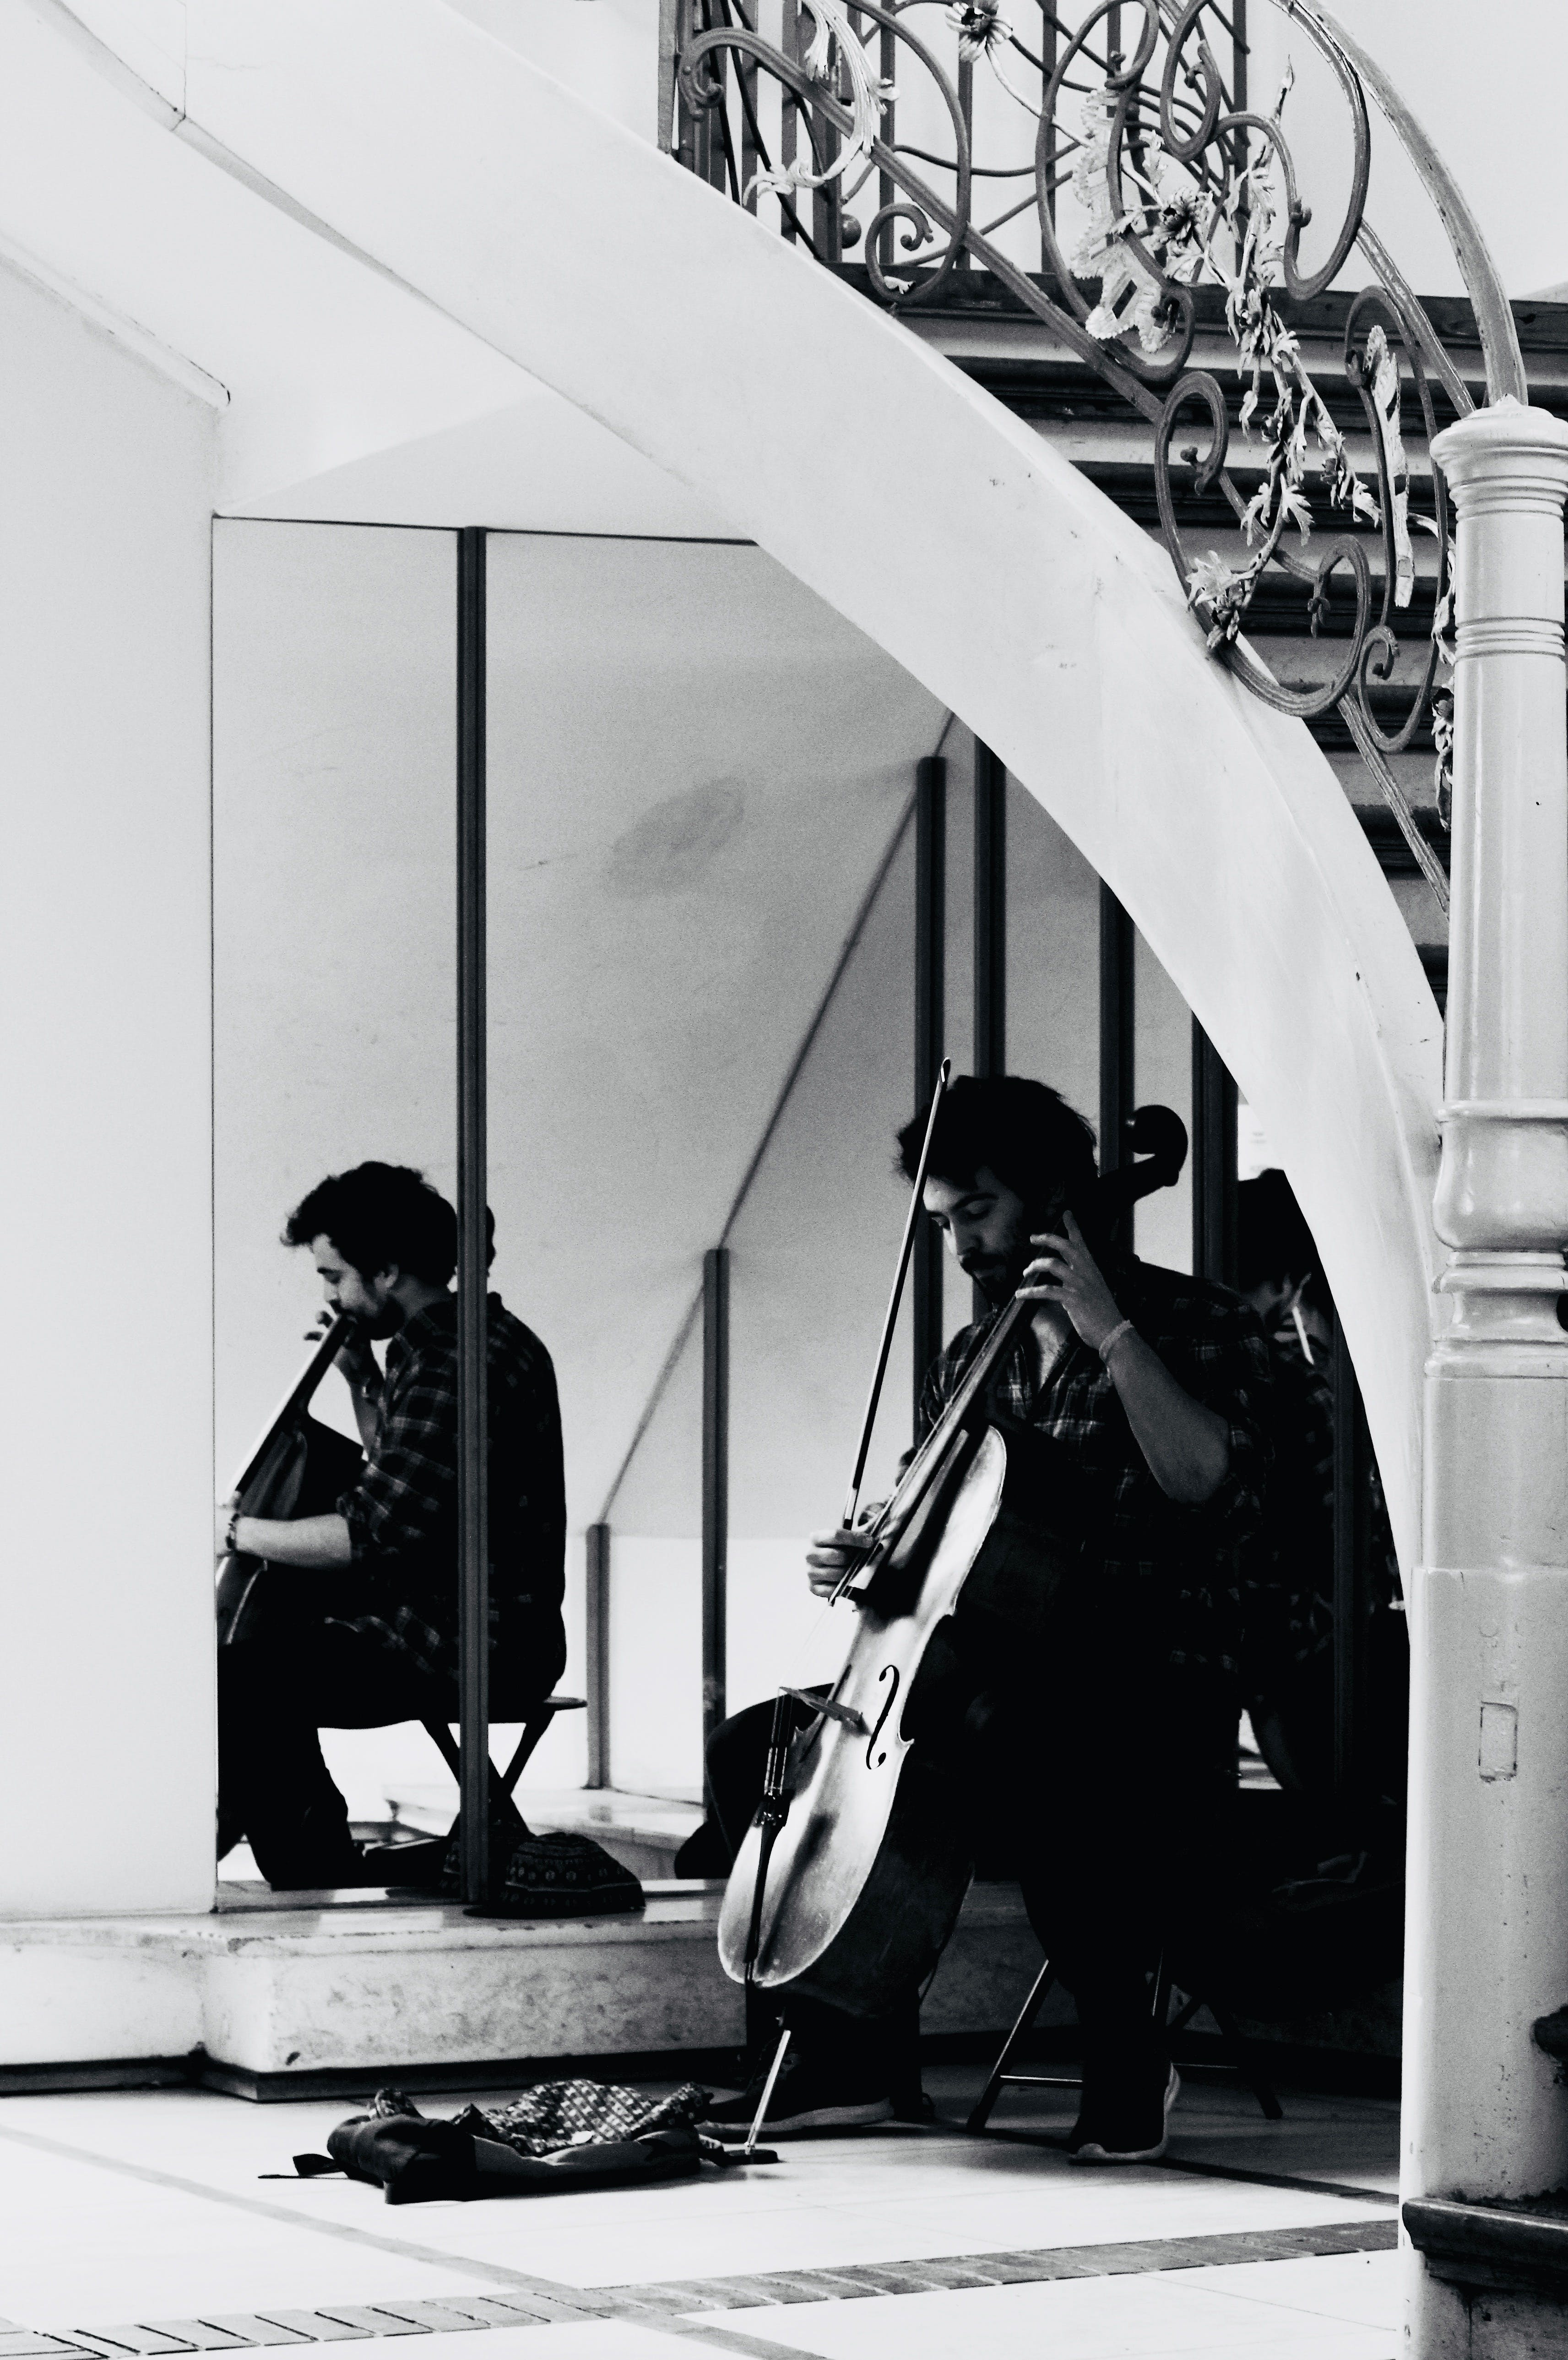 Grayscale Photo of a Man Playing Cello